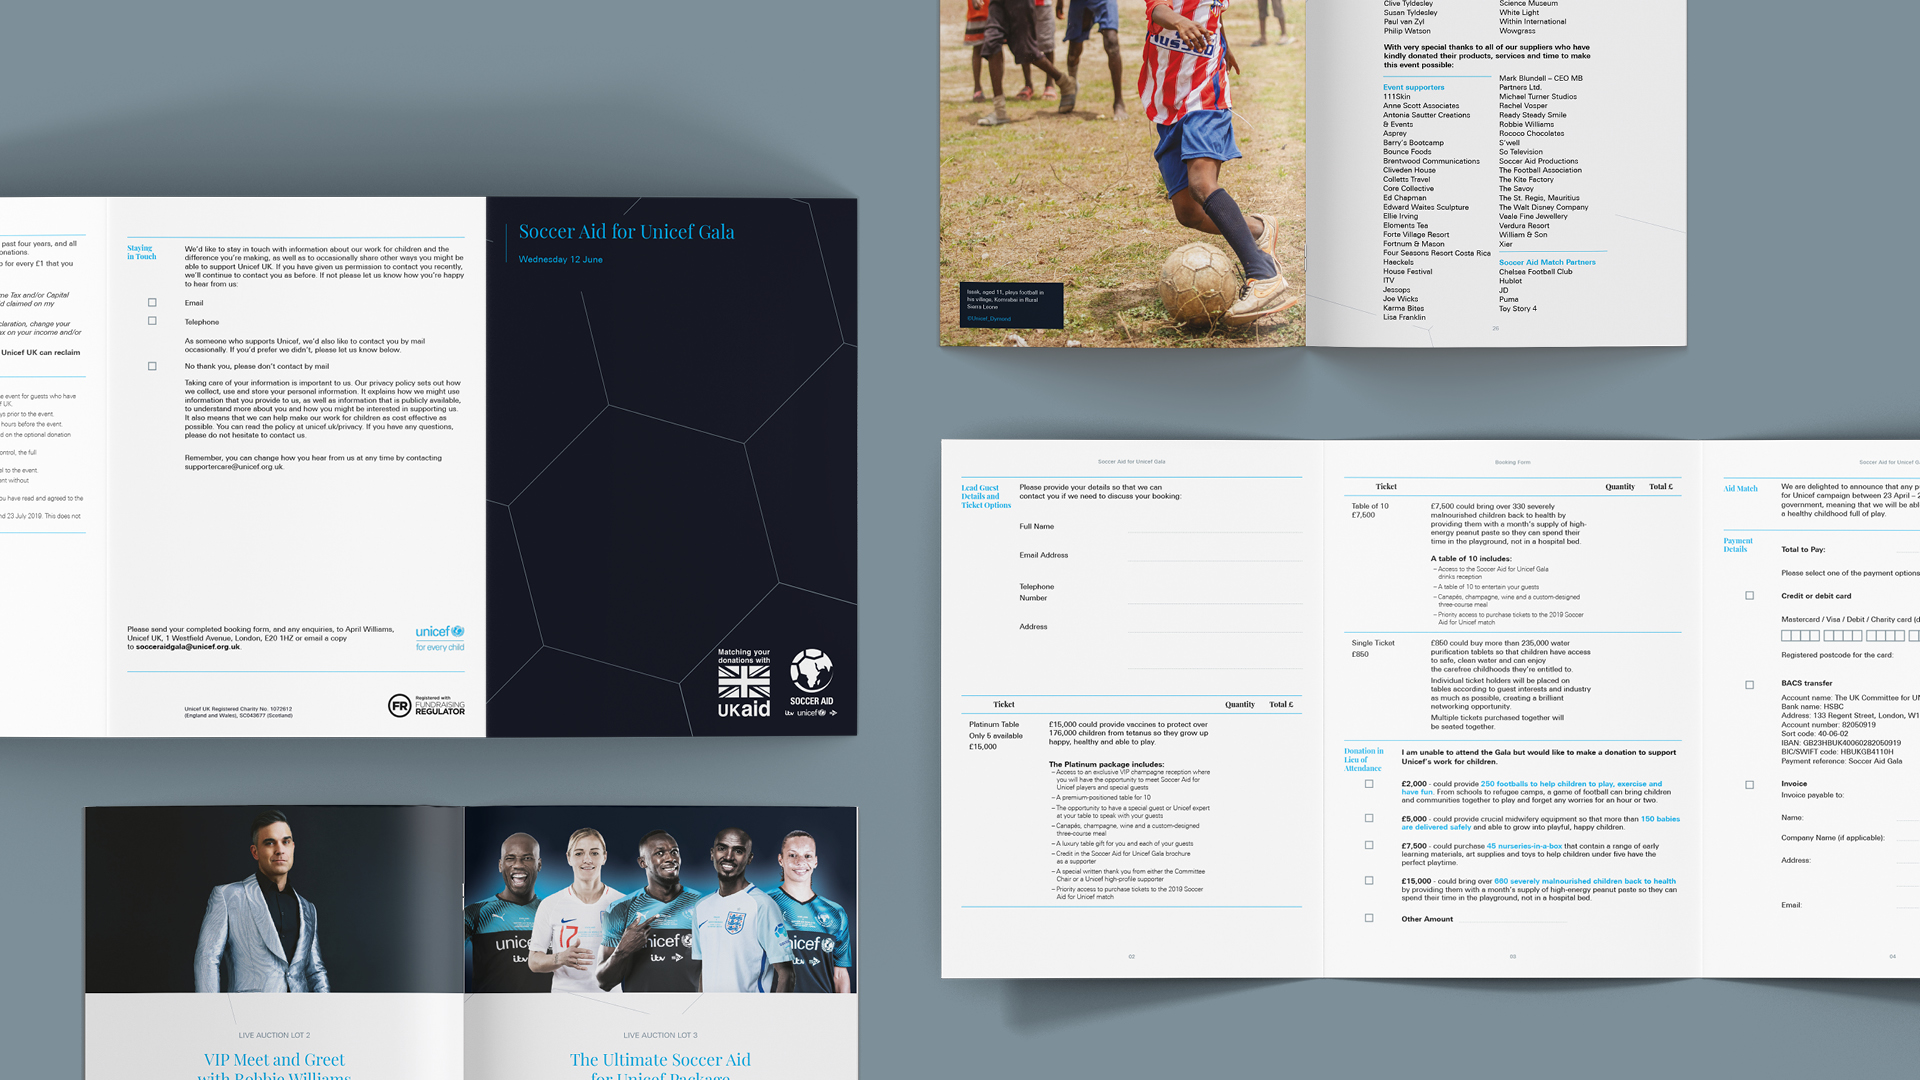 A range of Unicef Soccer Aid branded documents